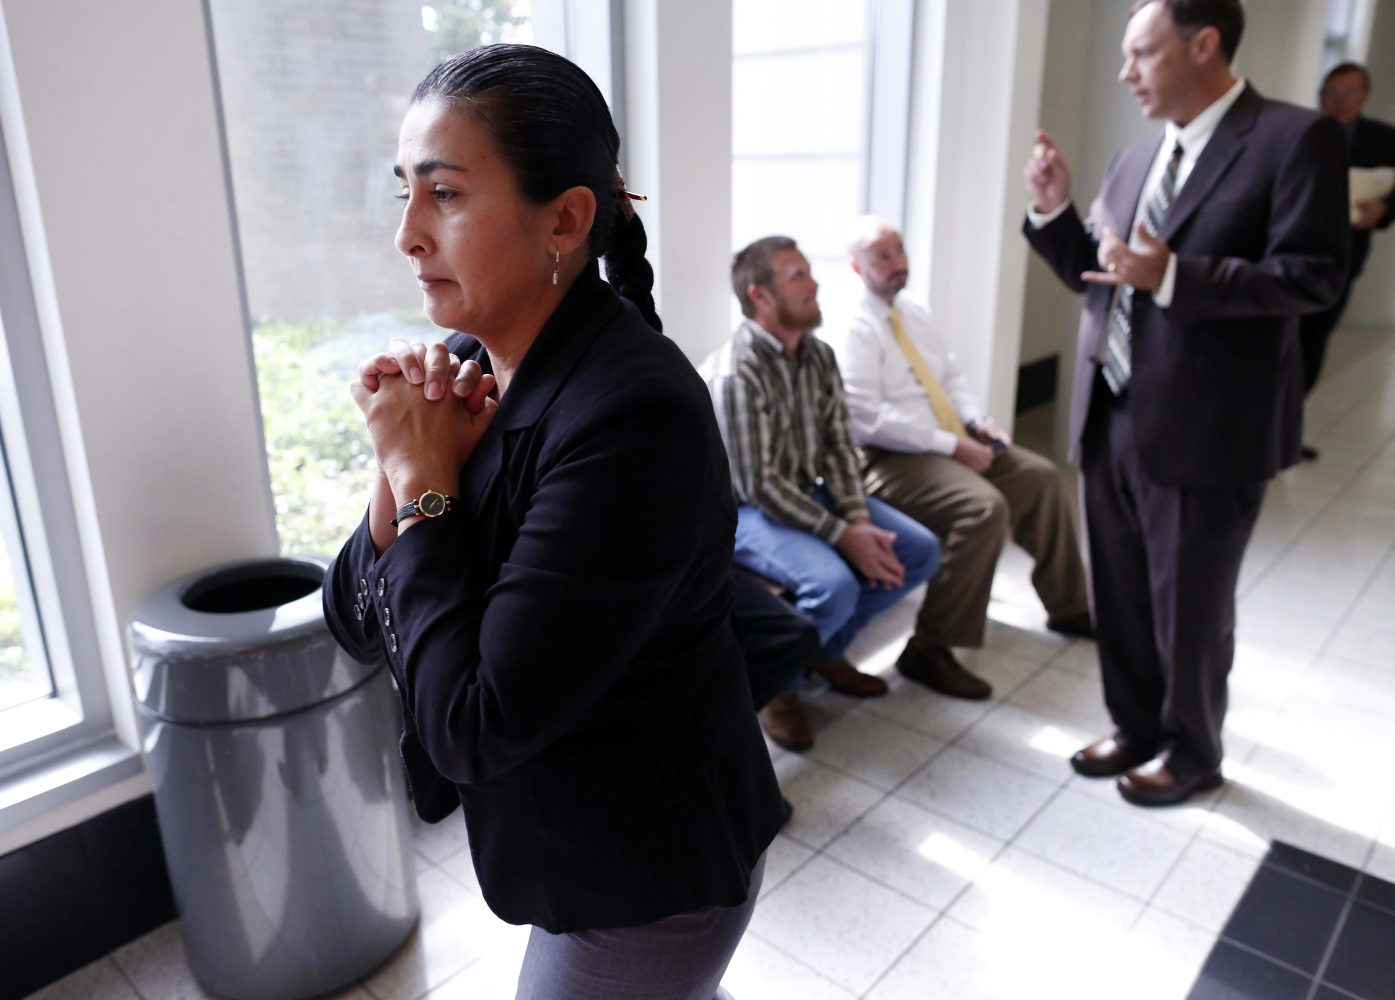 Claudia Aguilar, the mother of slain University of Florida student Christian Aguilar, walks the hall outside of courtroom 1B of the Alachua County Criminal Justice Center during a mid-morning recess for Pedro Bravo's murder trial Friday, August 8, 2014.  Bravo is accused of killing University of Florida student Christian Aguilar.  (Doug Finger/The Gainesville Sun/Pool)